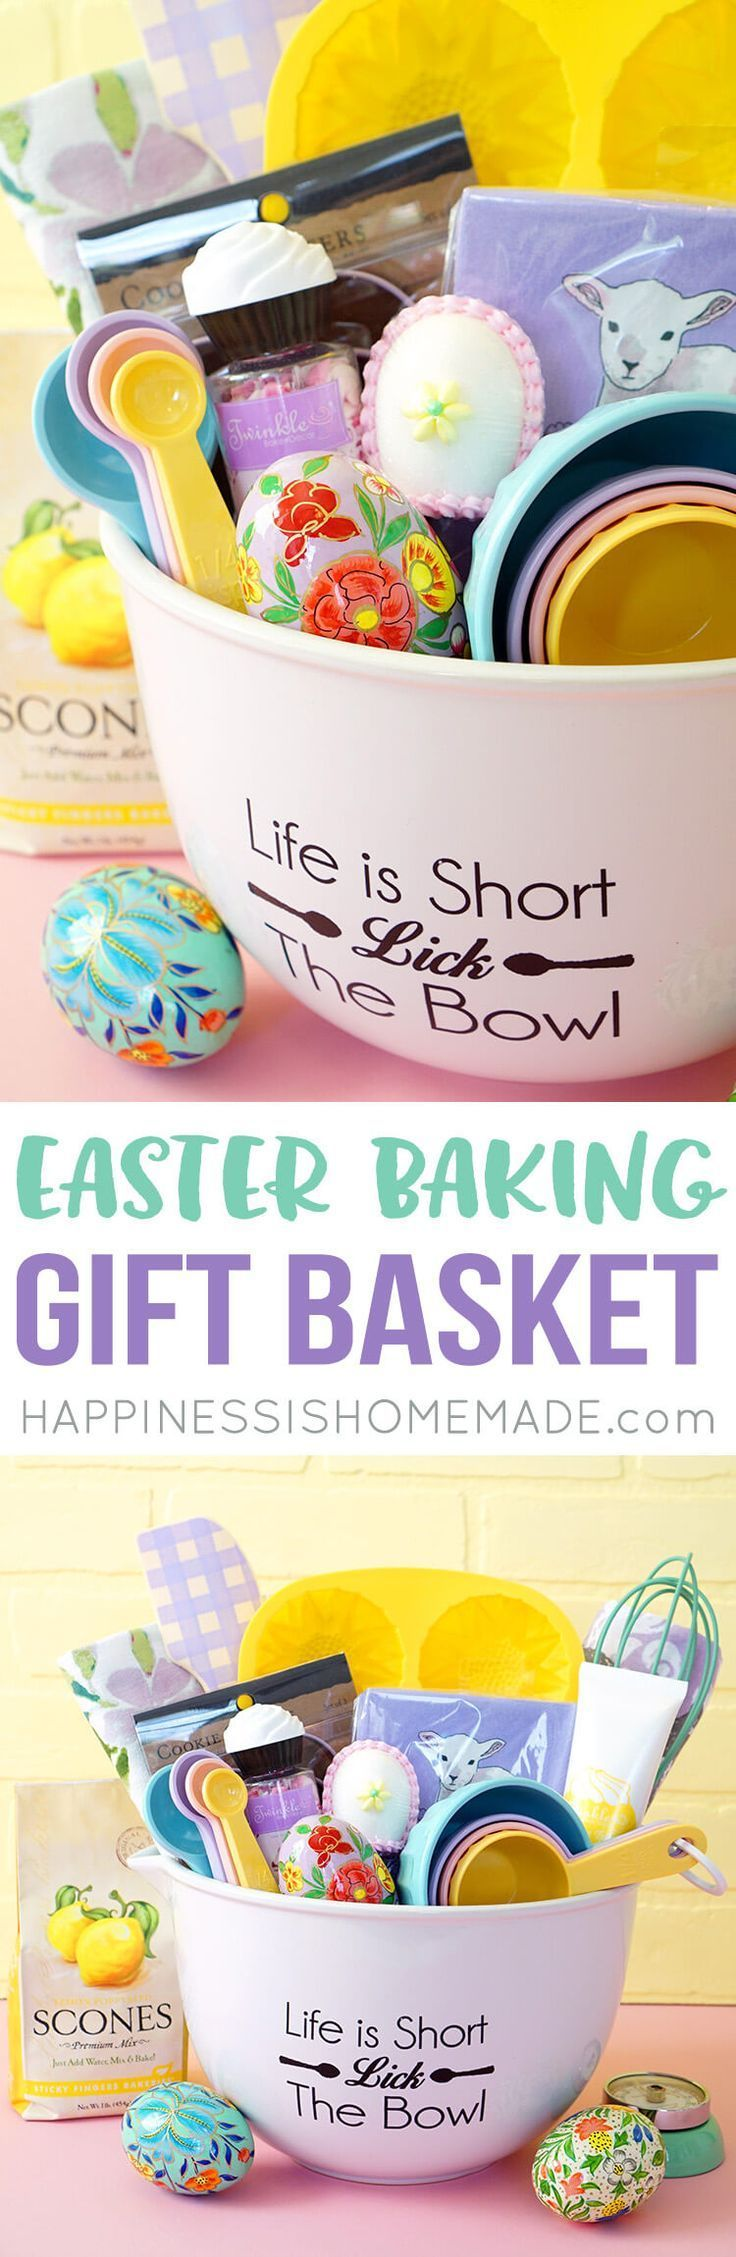 86 best easter party ideas images on pinterest easter birthdays easter baking gift basket surprise your hostess with this fun gift basket featuring cute pastel negle Image collections